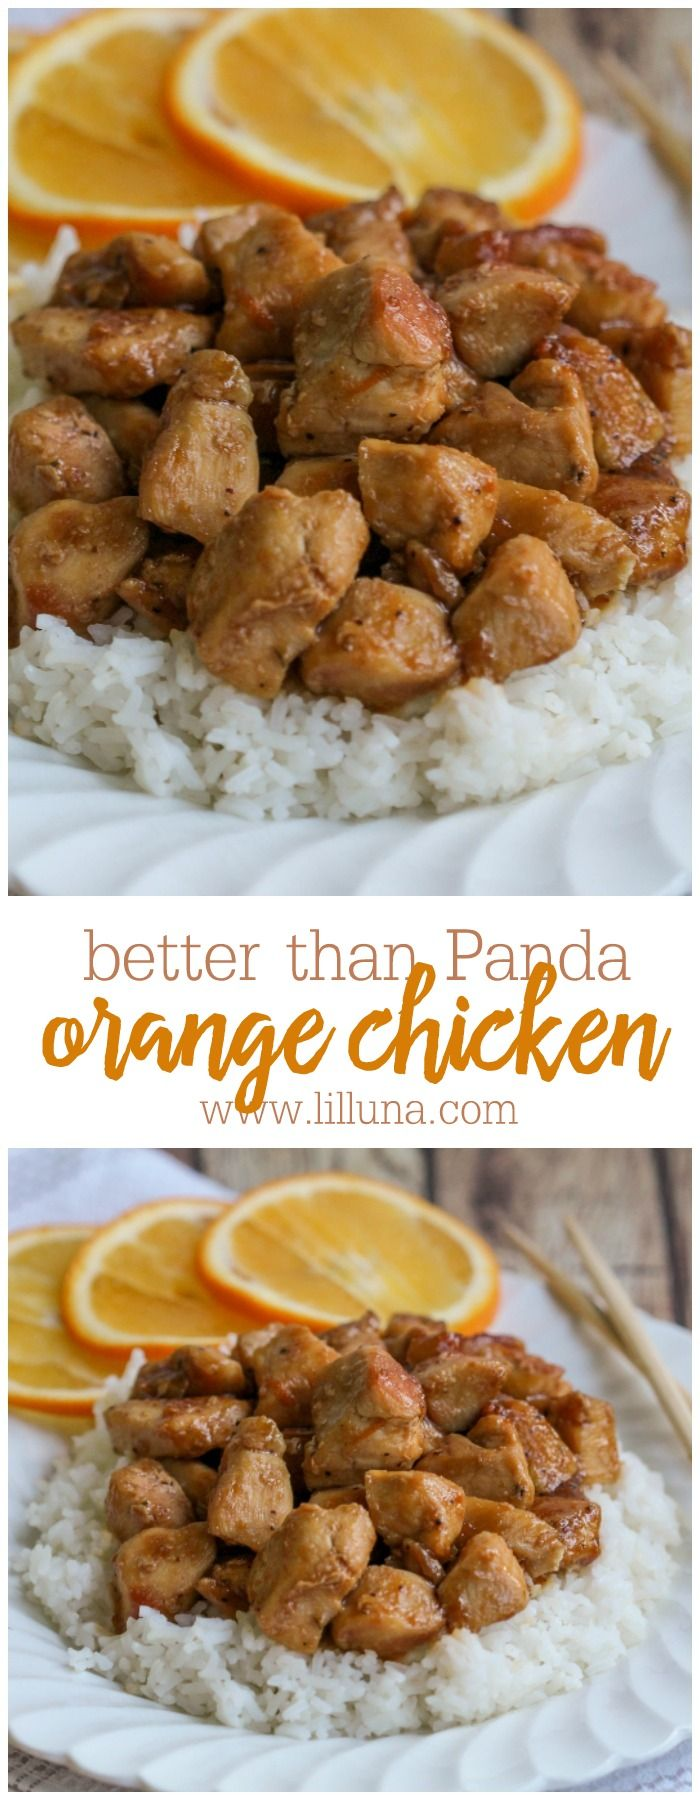 Healthier than Panda Orange Chicken - this Asian dish is a new favorite dinner recipe and easy too!